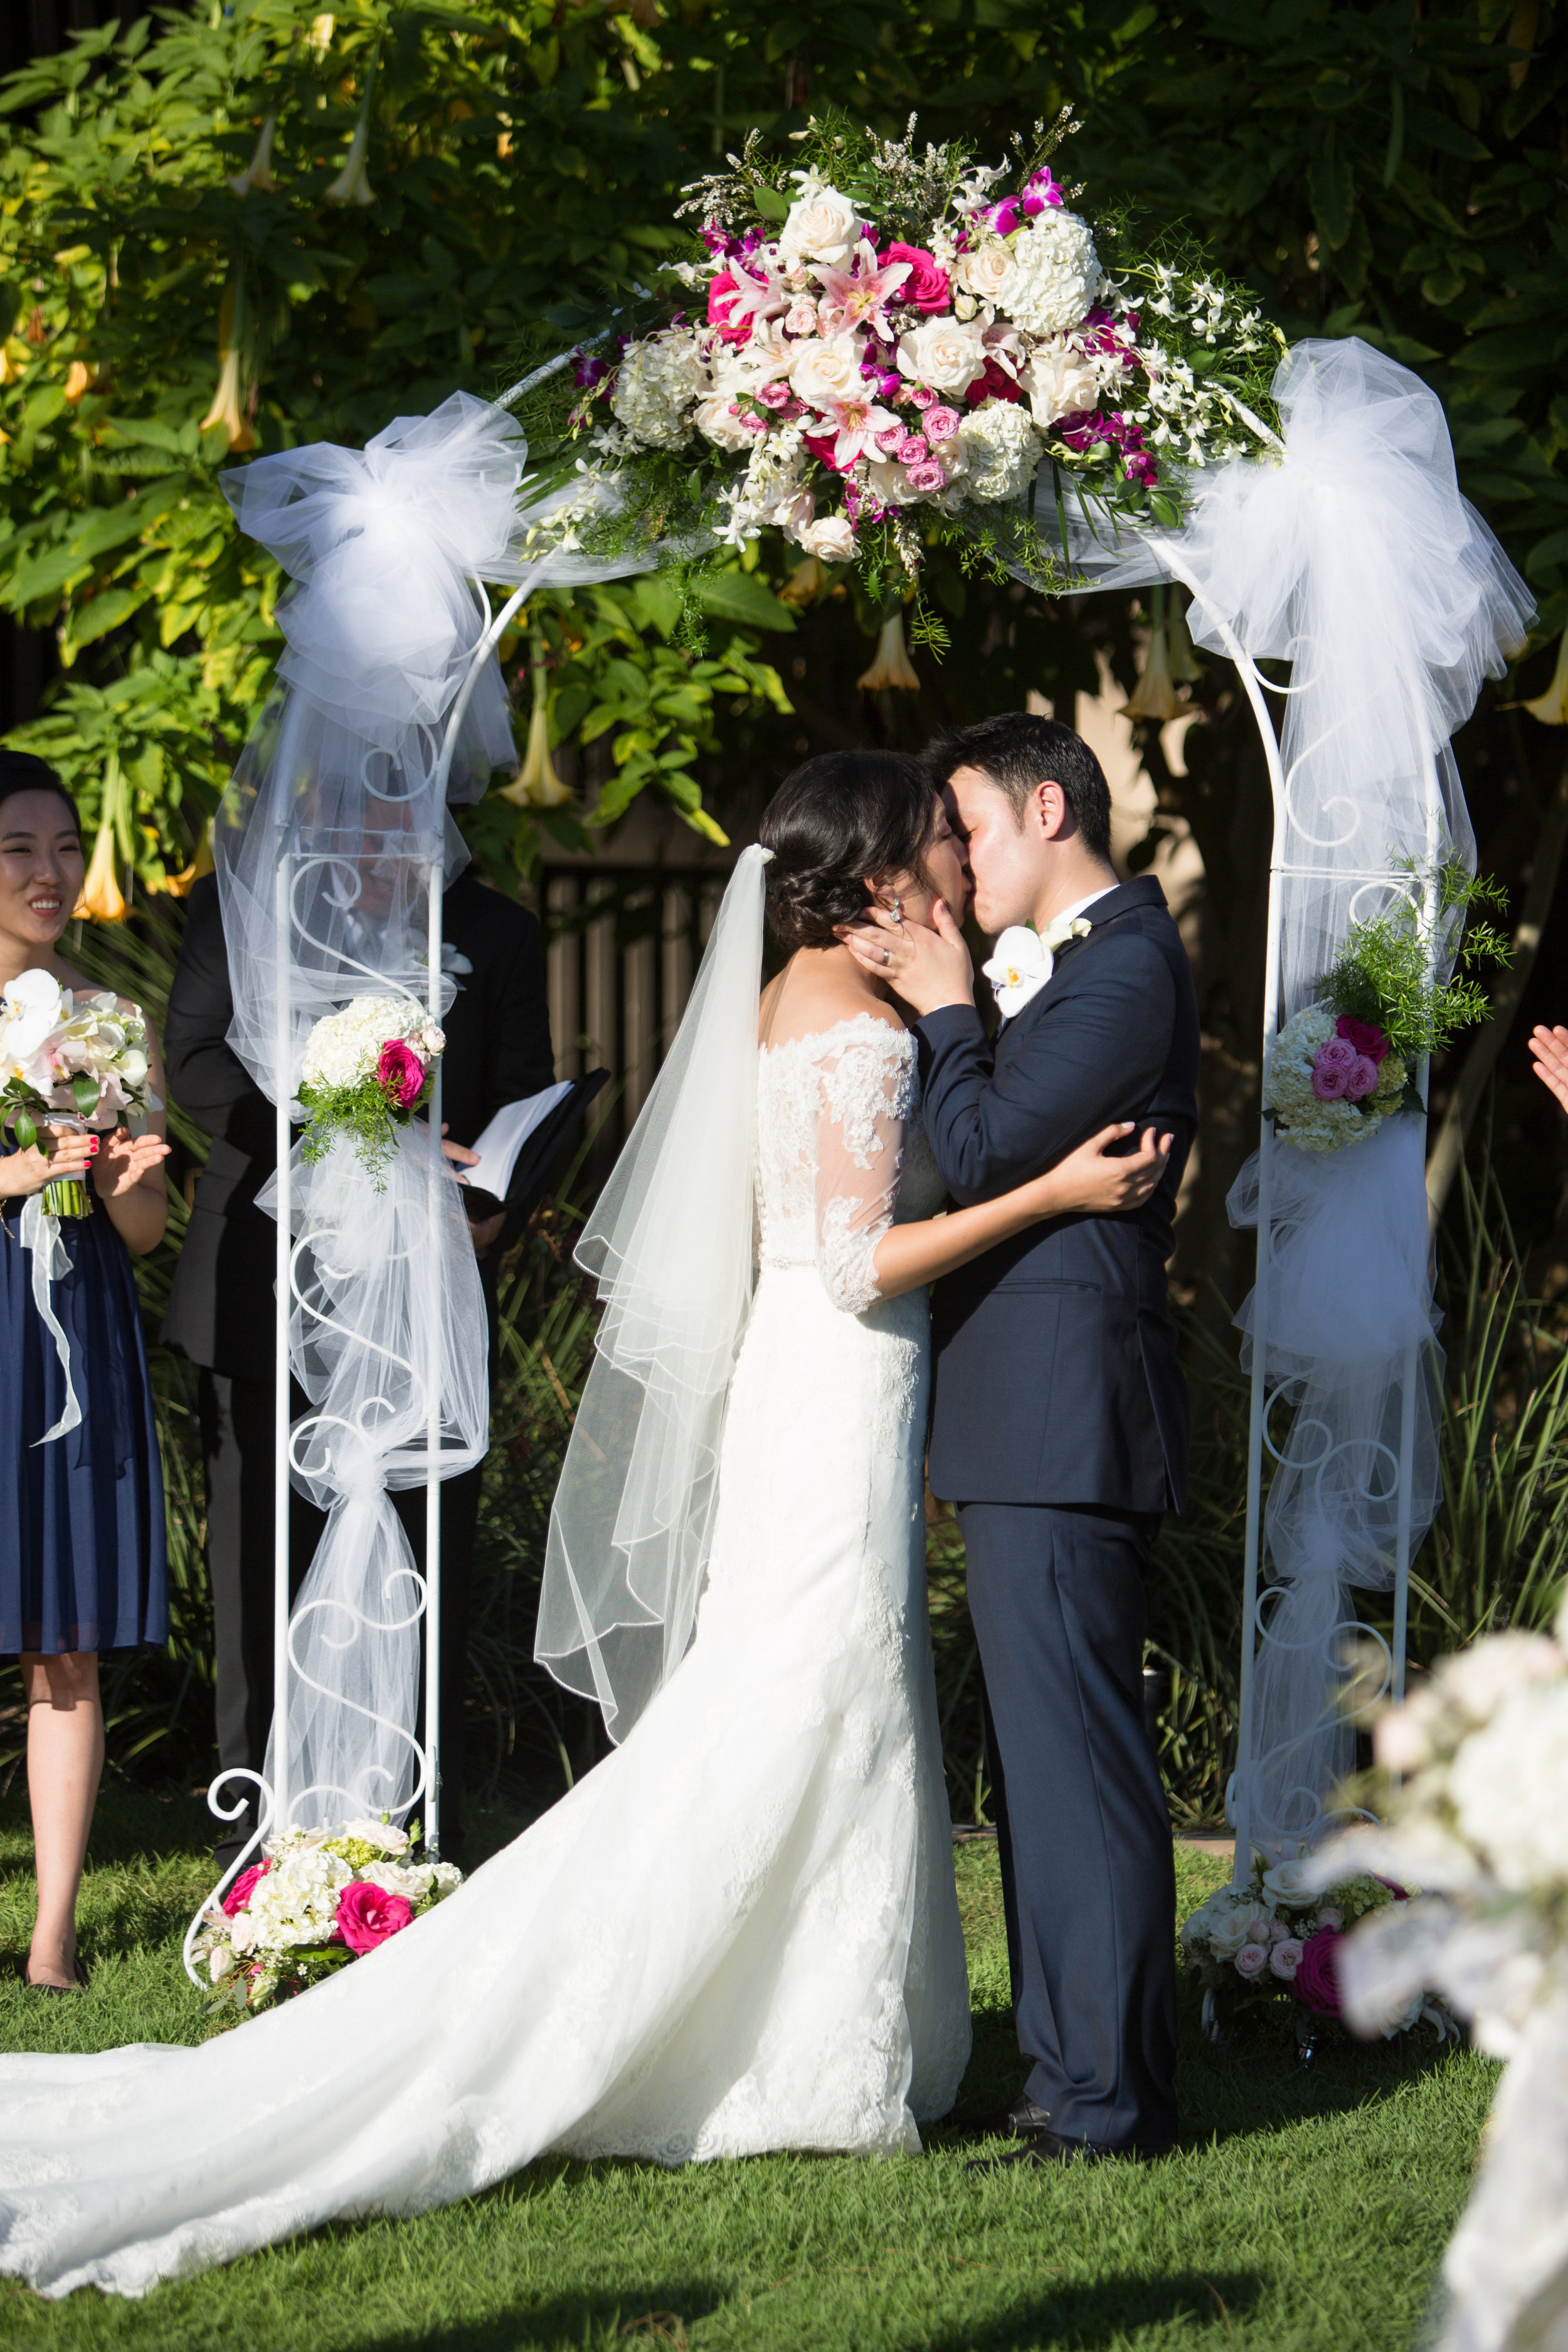 Angie and John are Married!